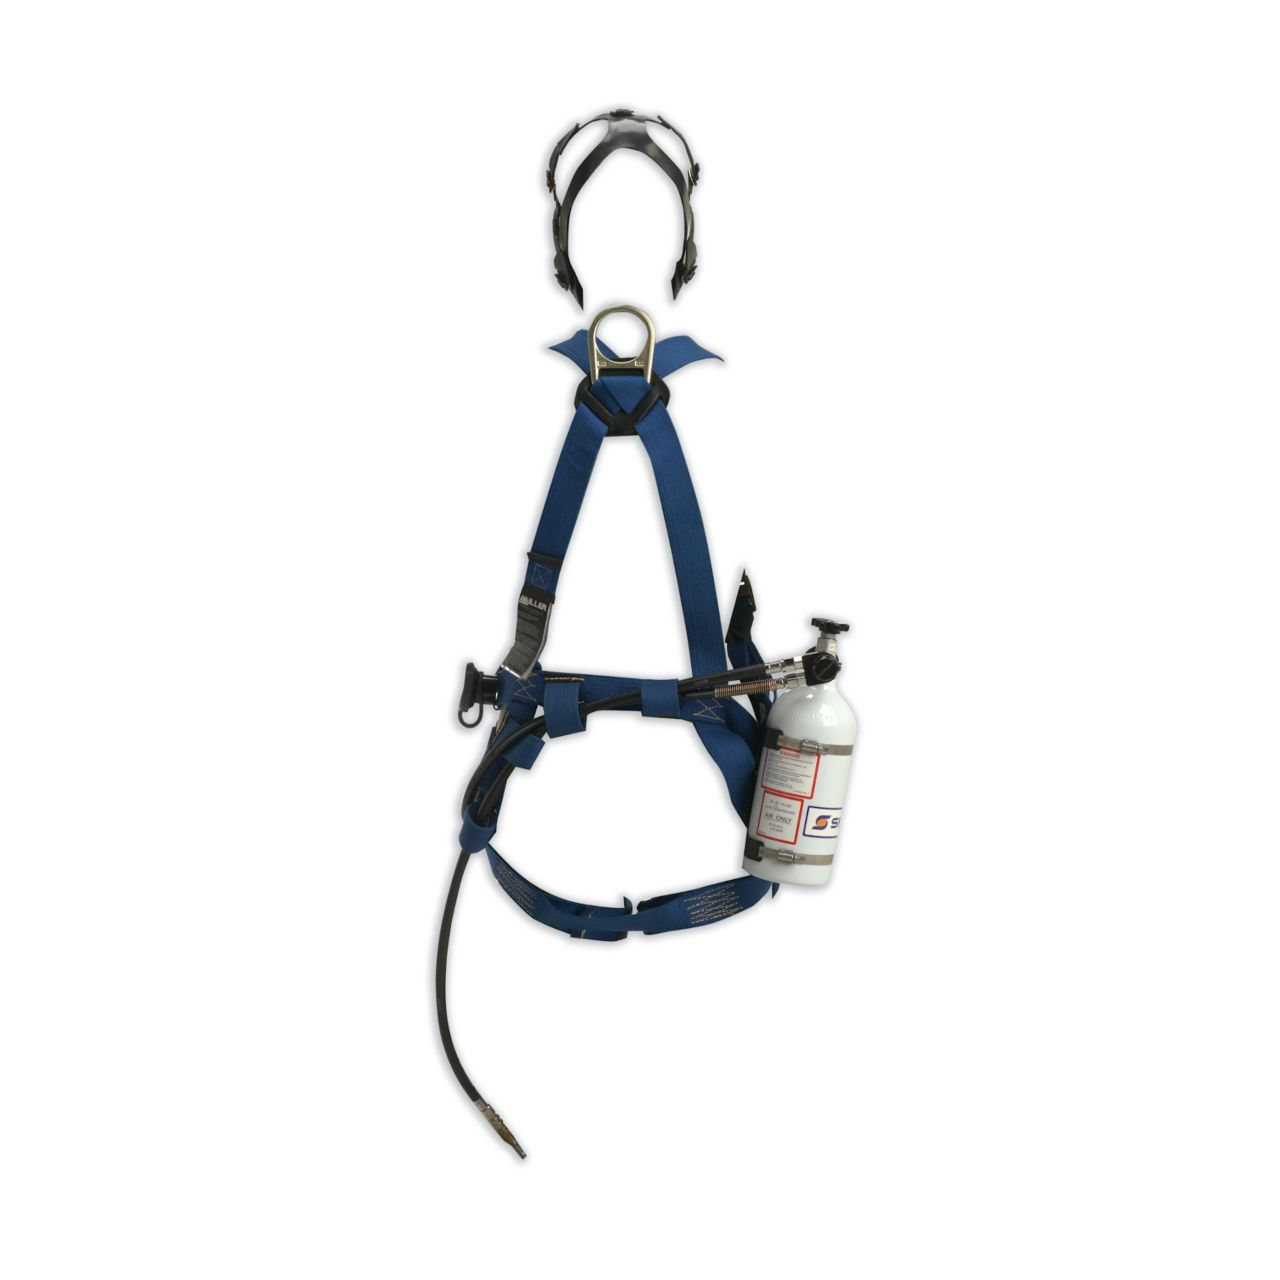 HS_pressure_demand_sar_with_escape_cylinder_hon_resp_sar_hip-pac_harness_back_963103